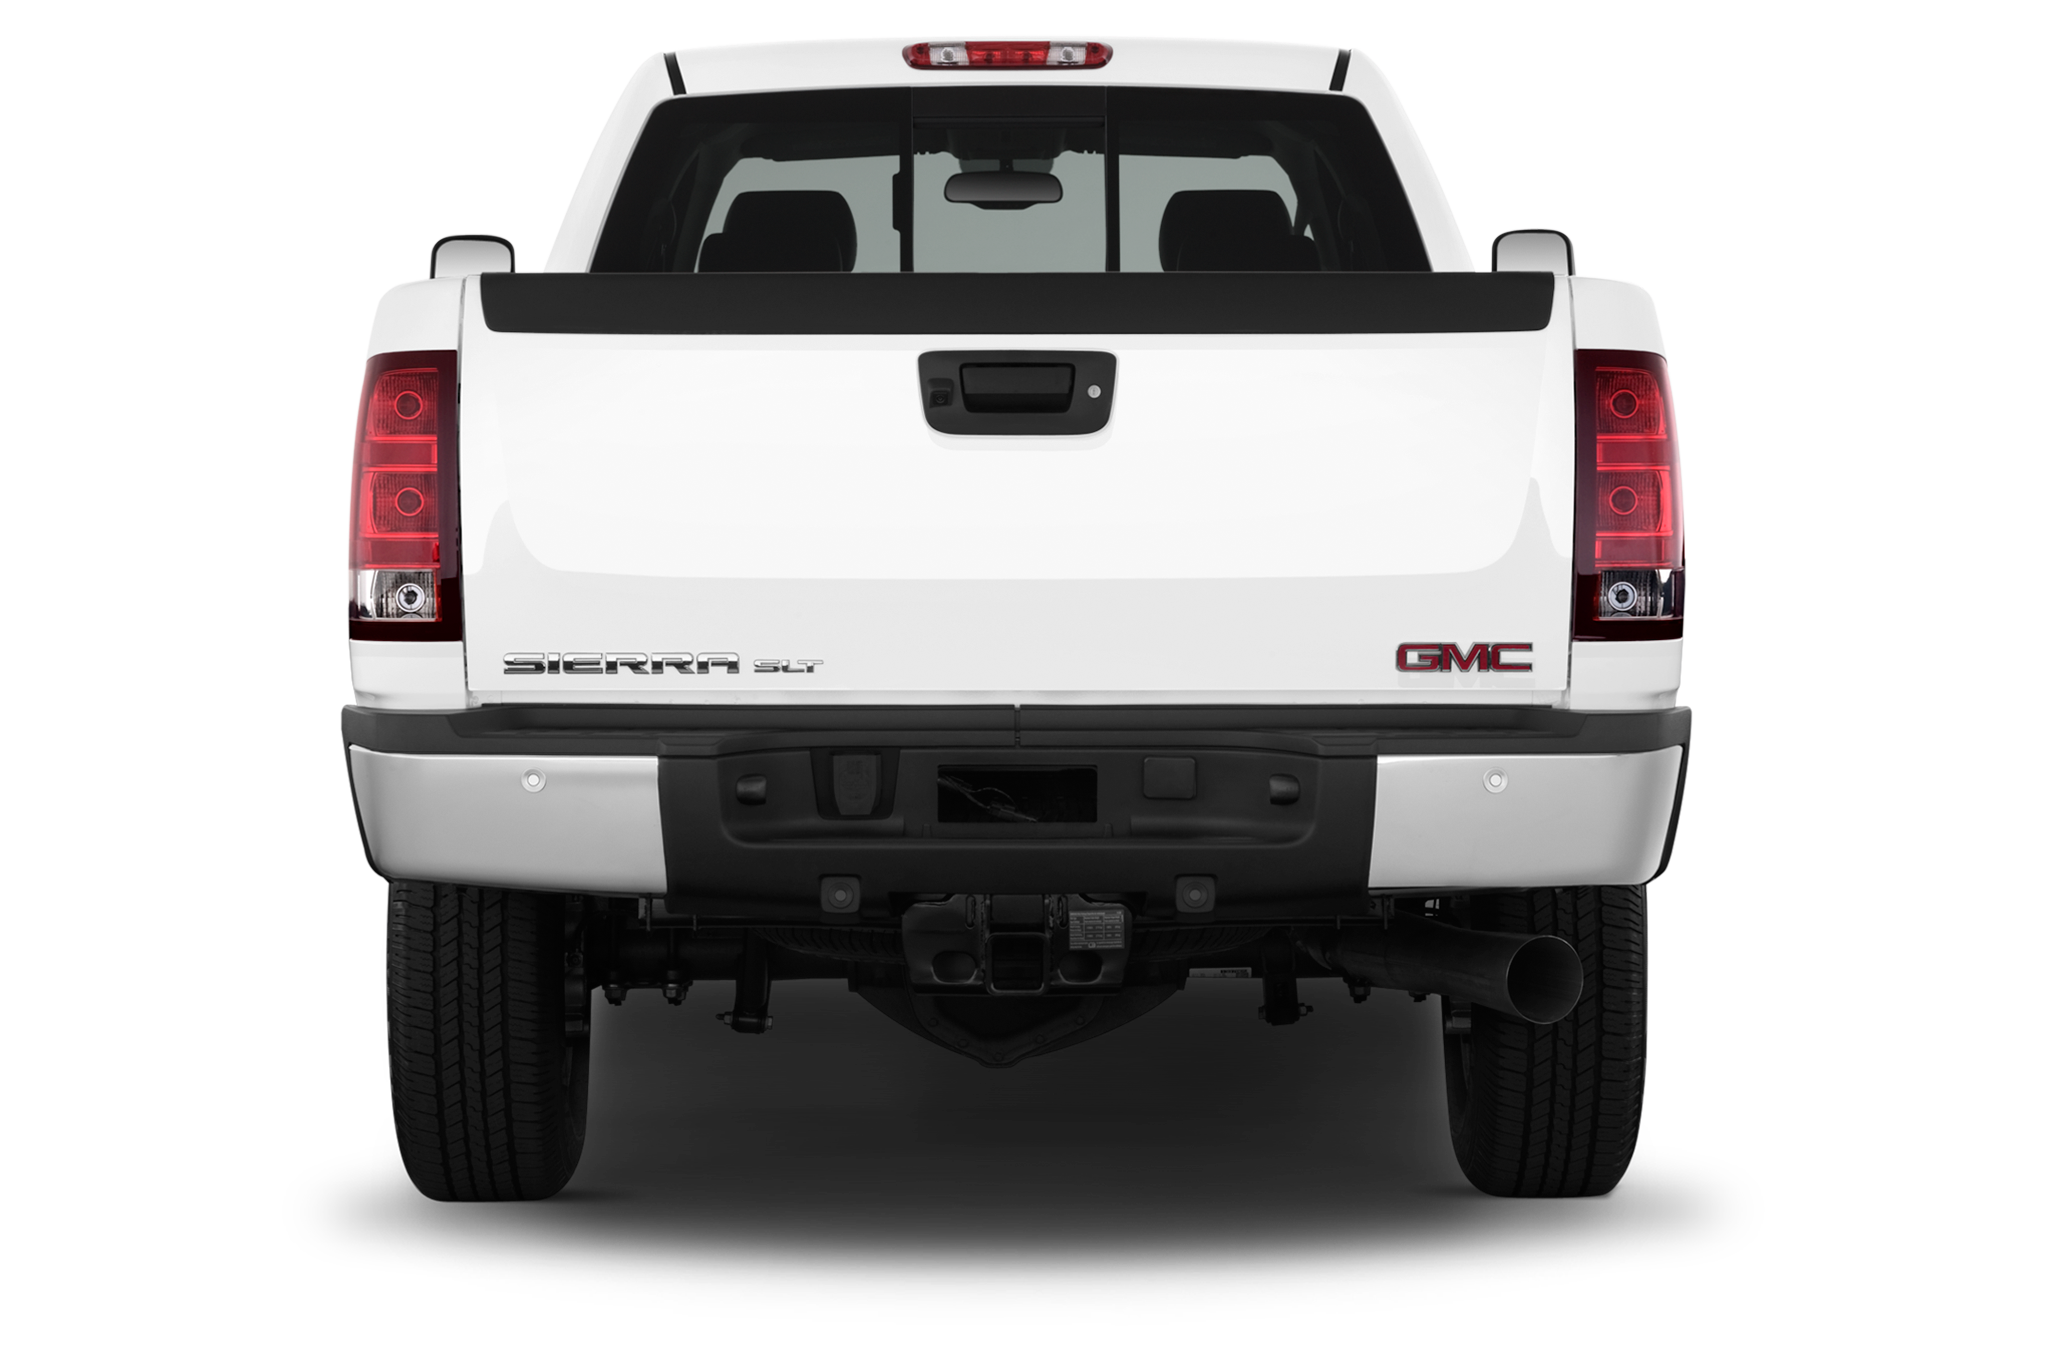 2015 Gmc Sierra 1500 Specifications Details And Data